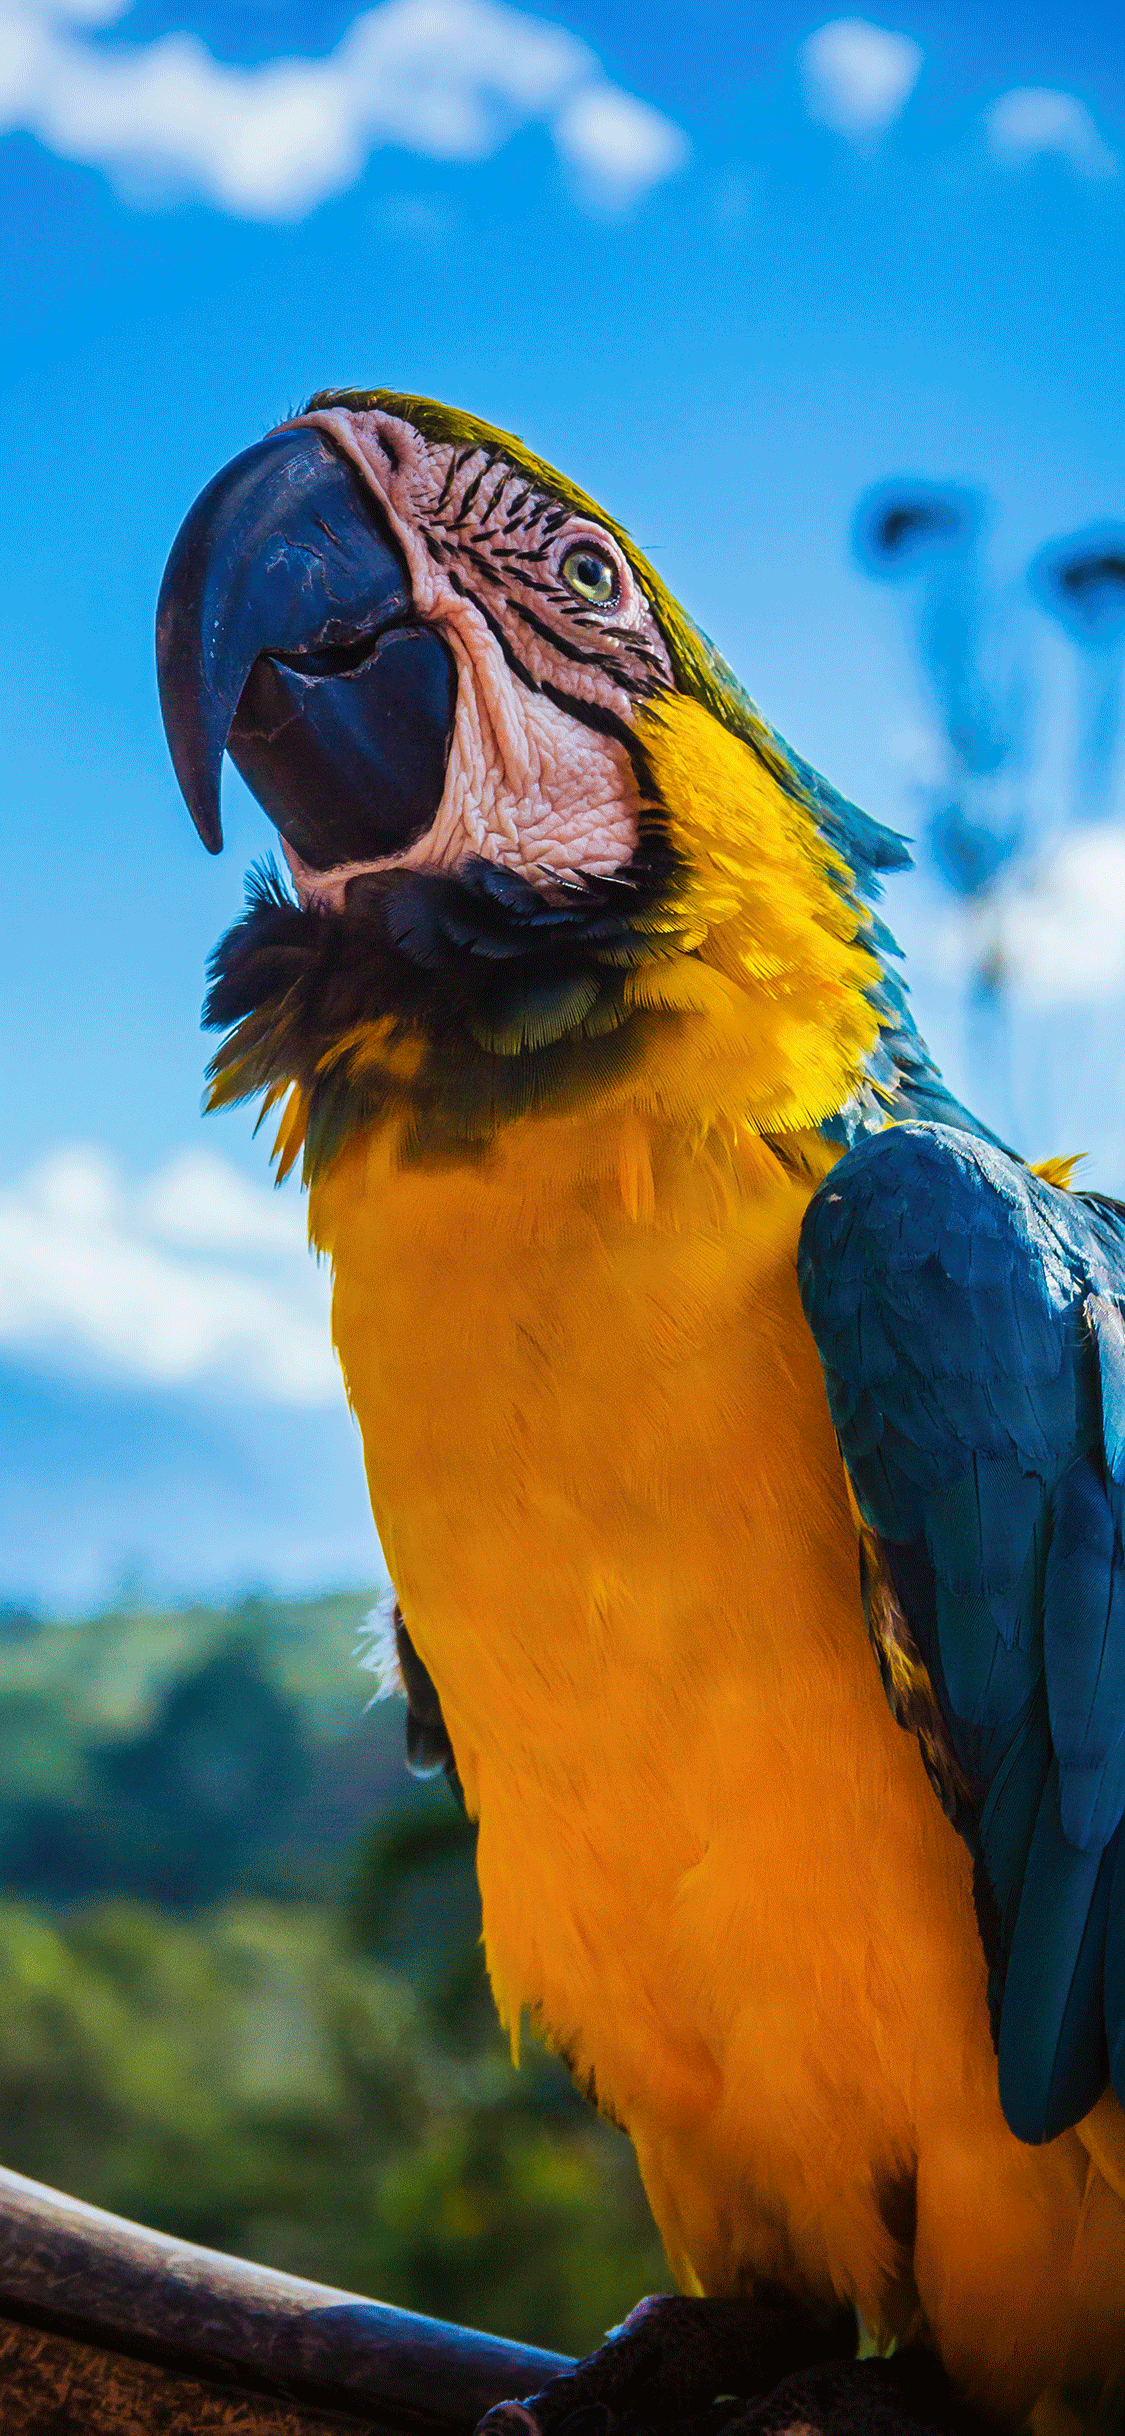 iPhone wallpaper parrot Fonds d'écran iPhone du 17/08/2018